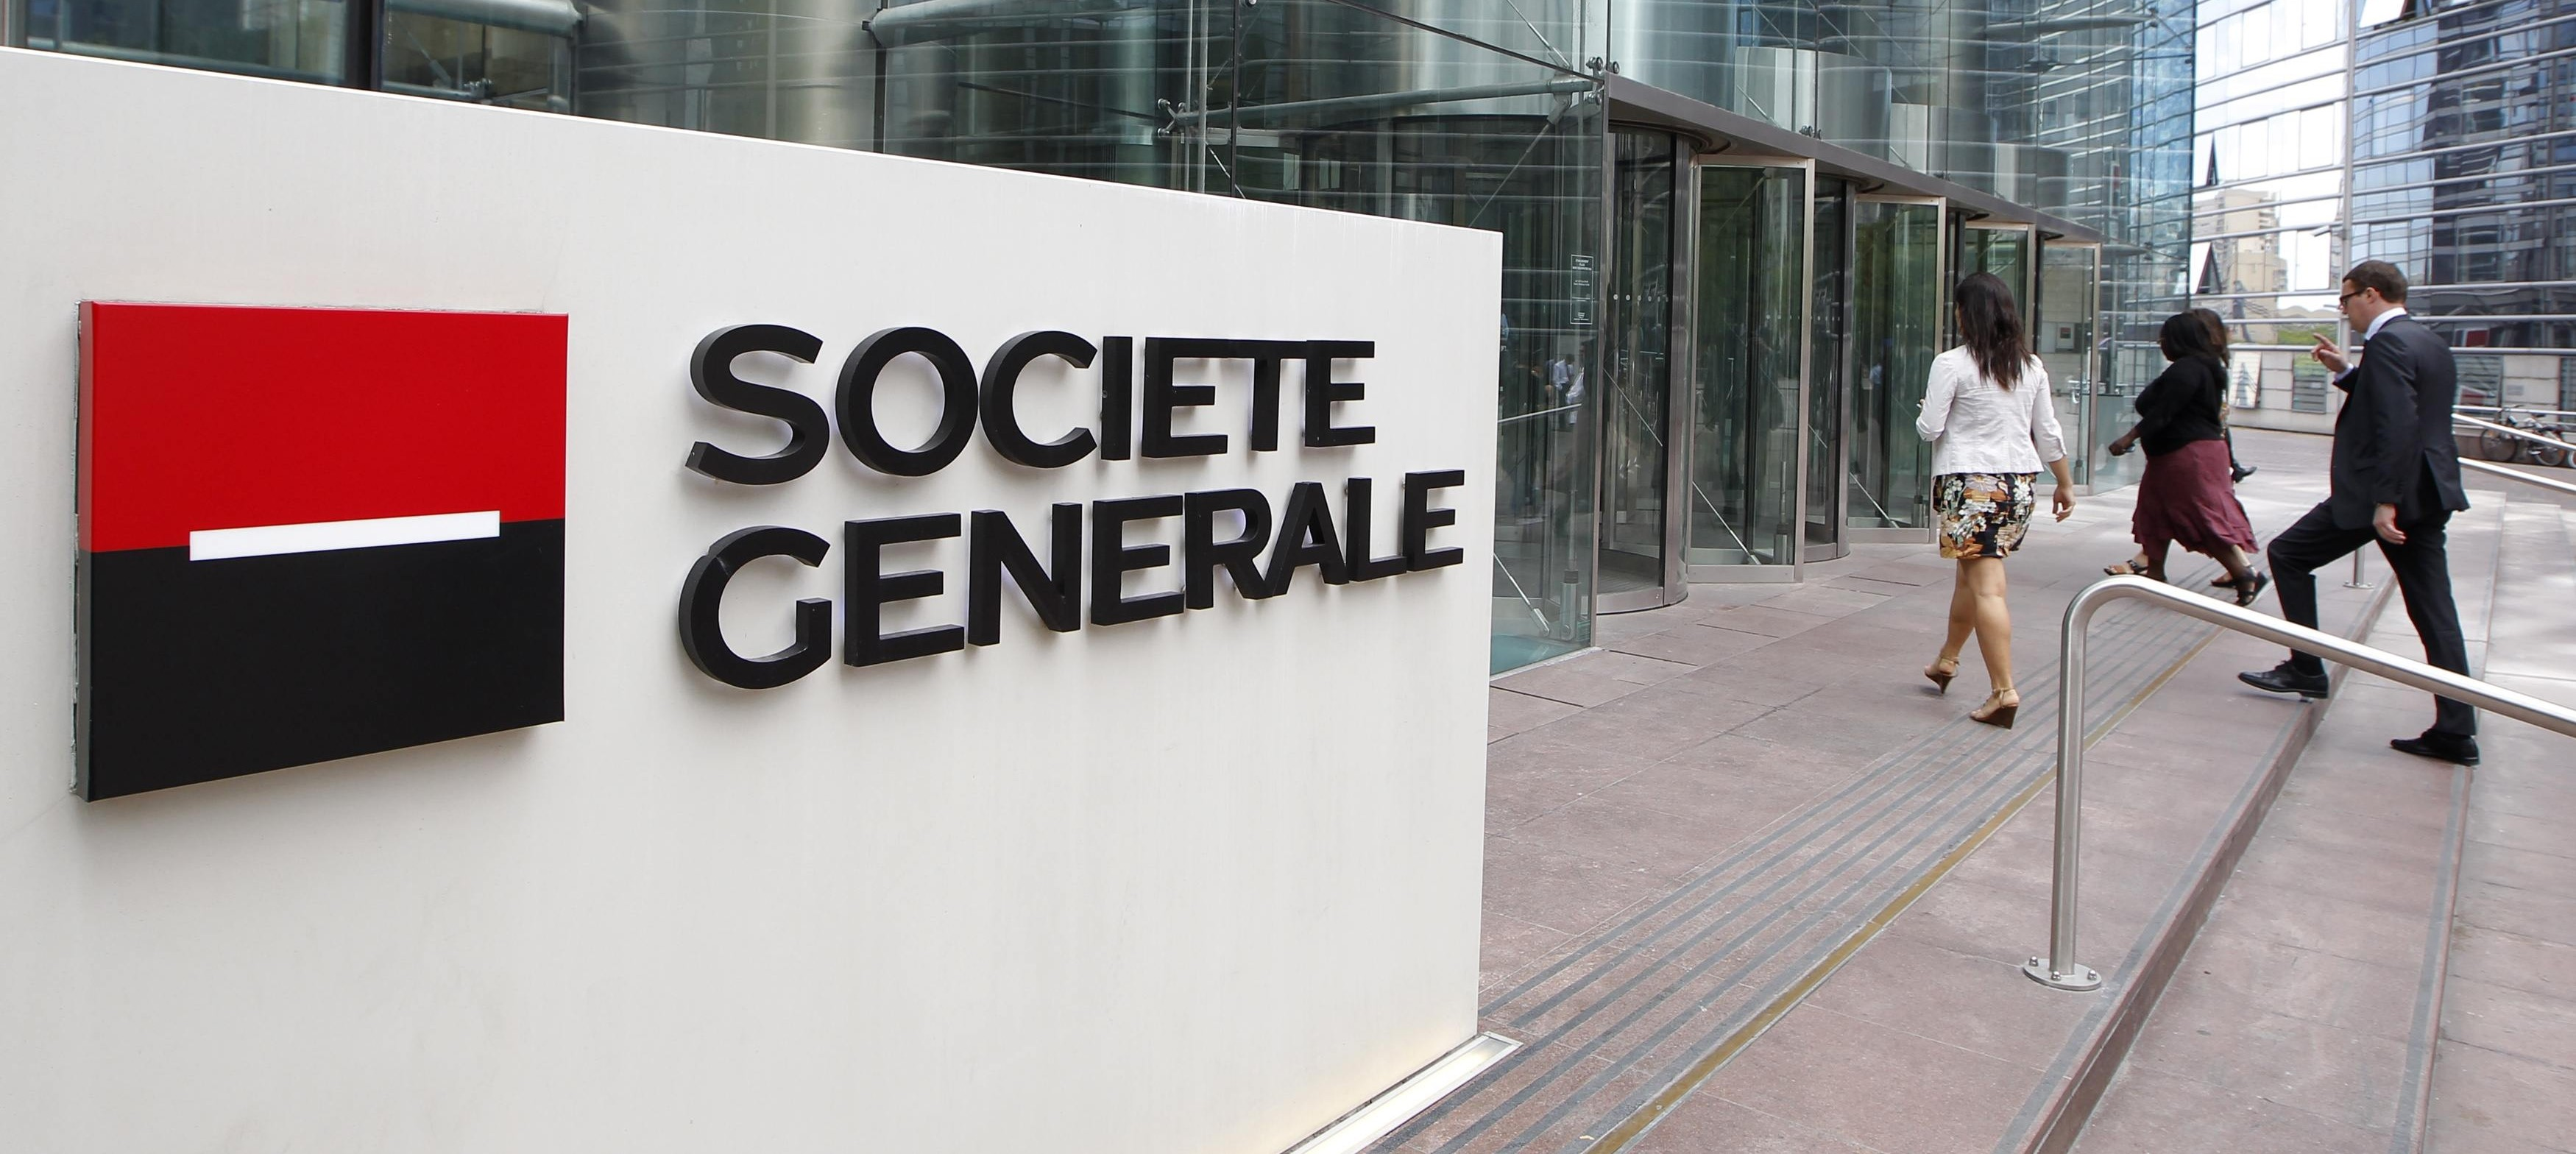 Societe Generale Sells its Business in Bulgaria